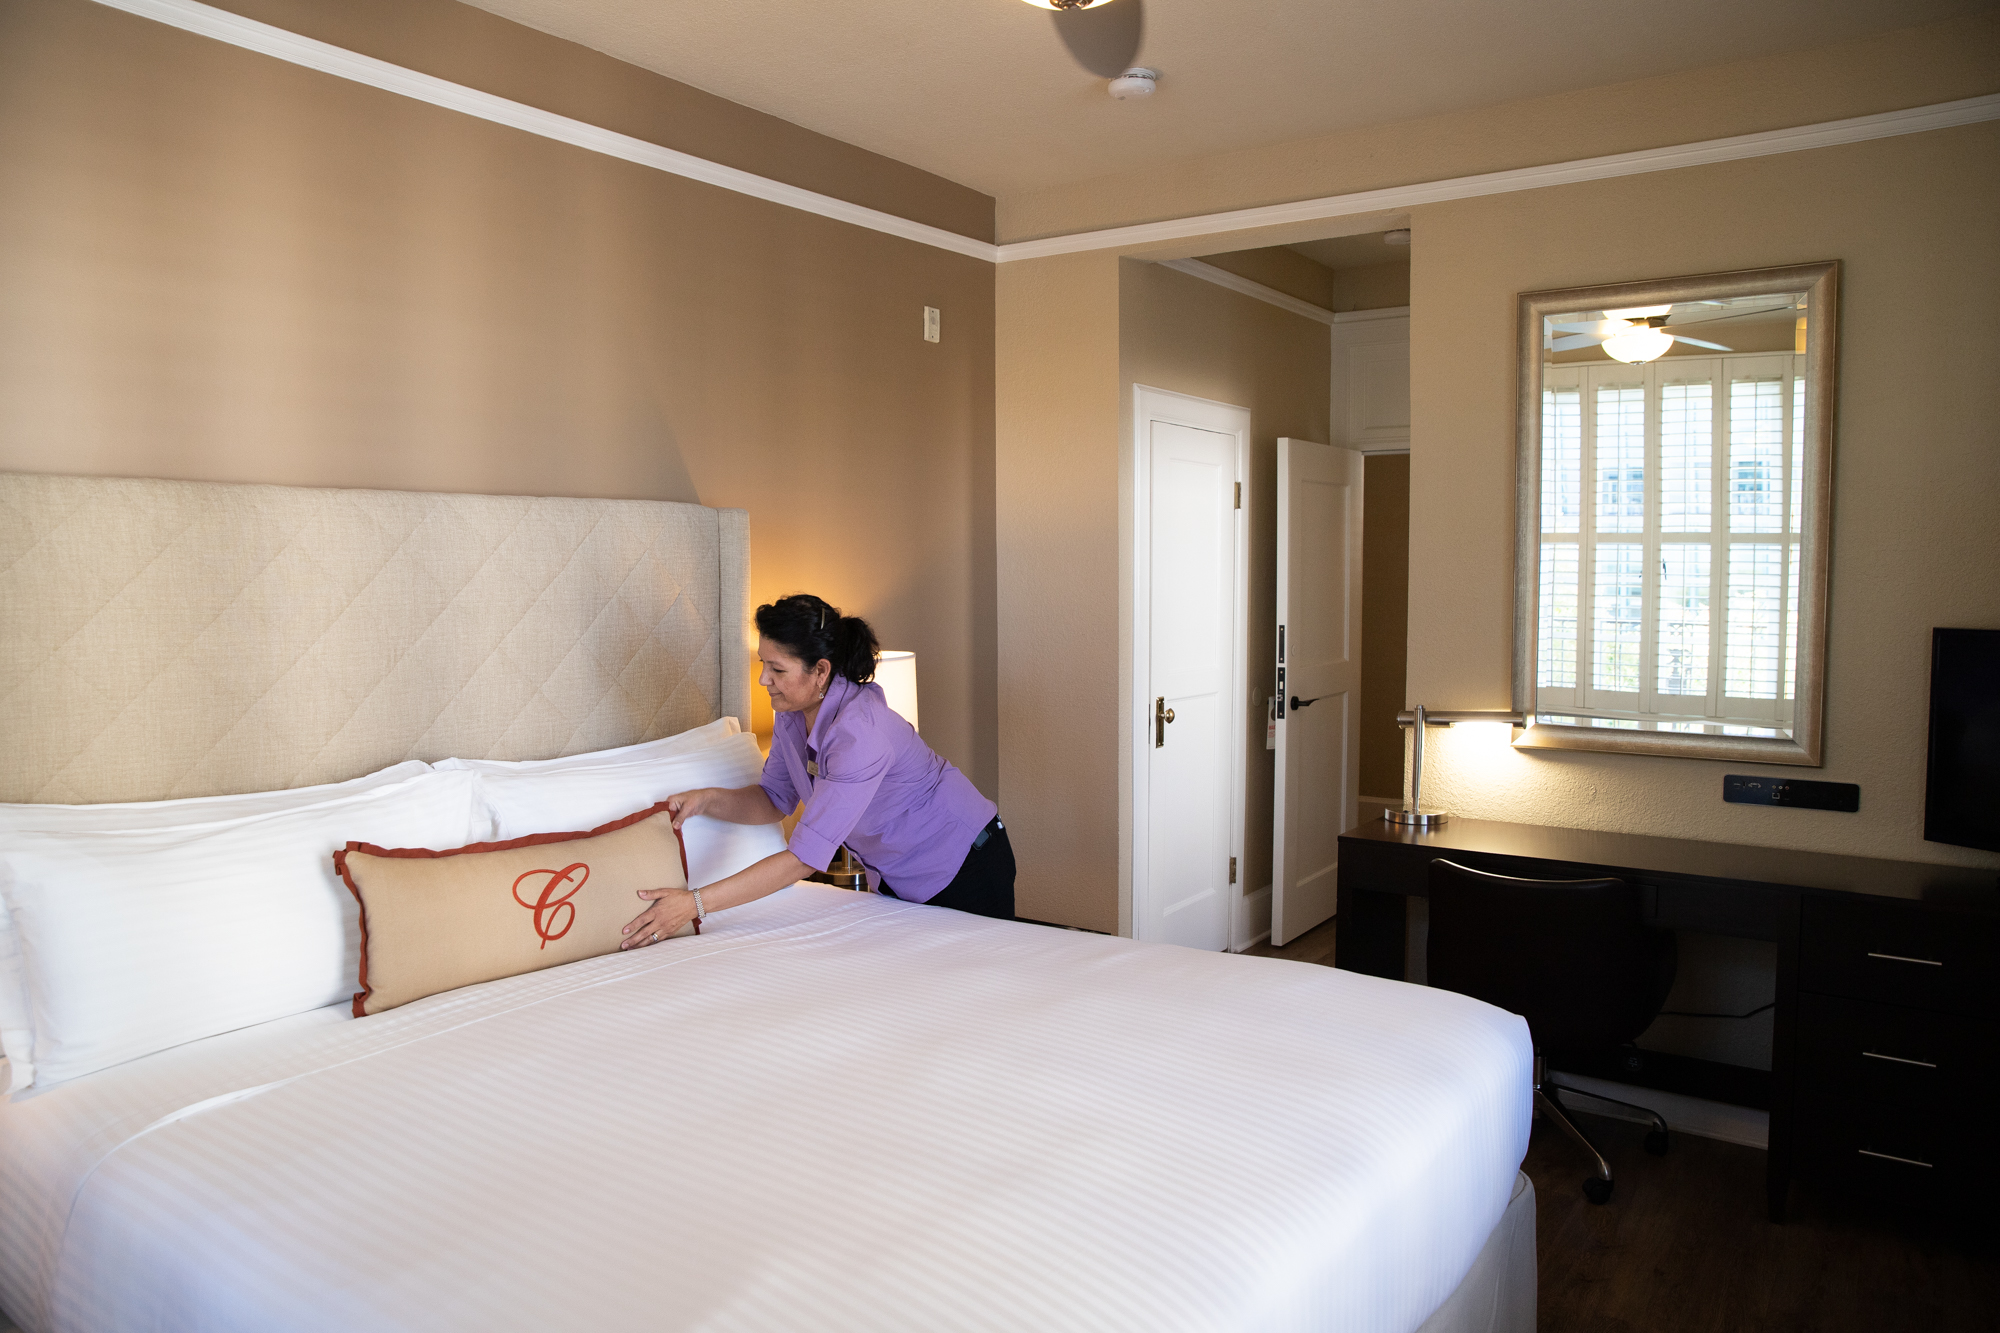 Ninfa Polanco, housekeeping supervisor at the Cardinal Hotel, places a pillow on a bed. The hotel's rooms were given a new look during a renovation in 2013-14. Photo by Magali Gauthier.